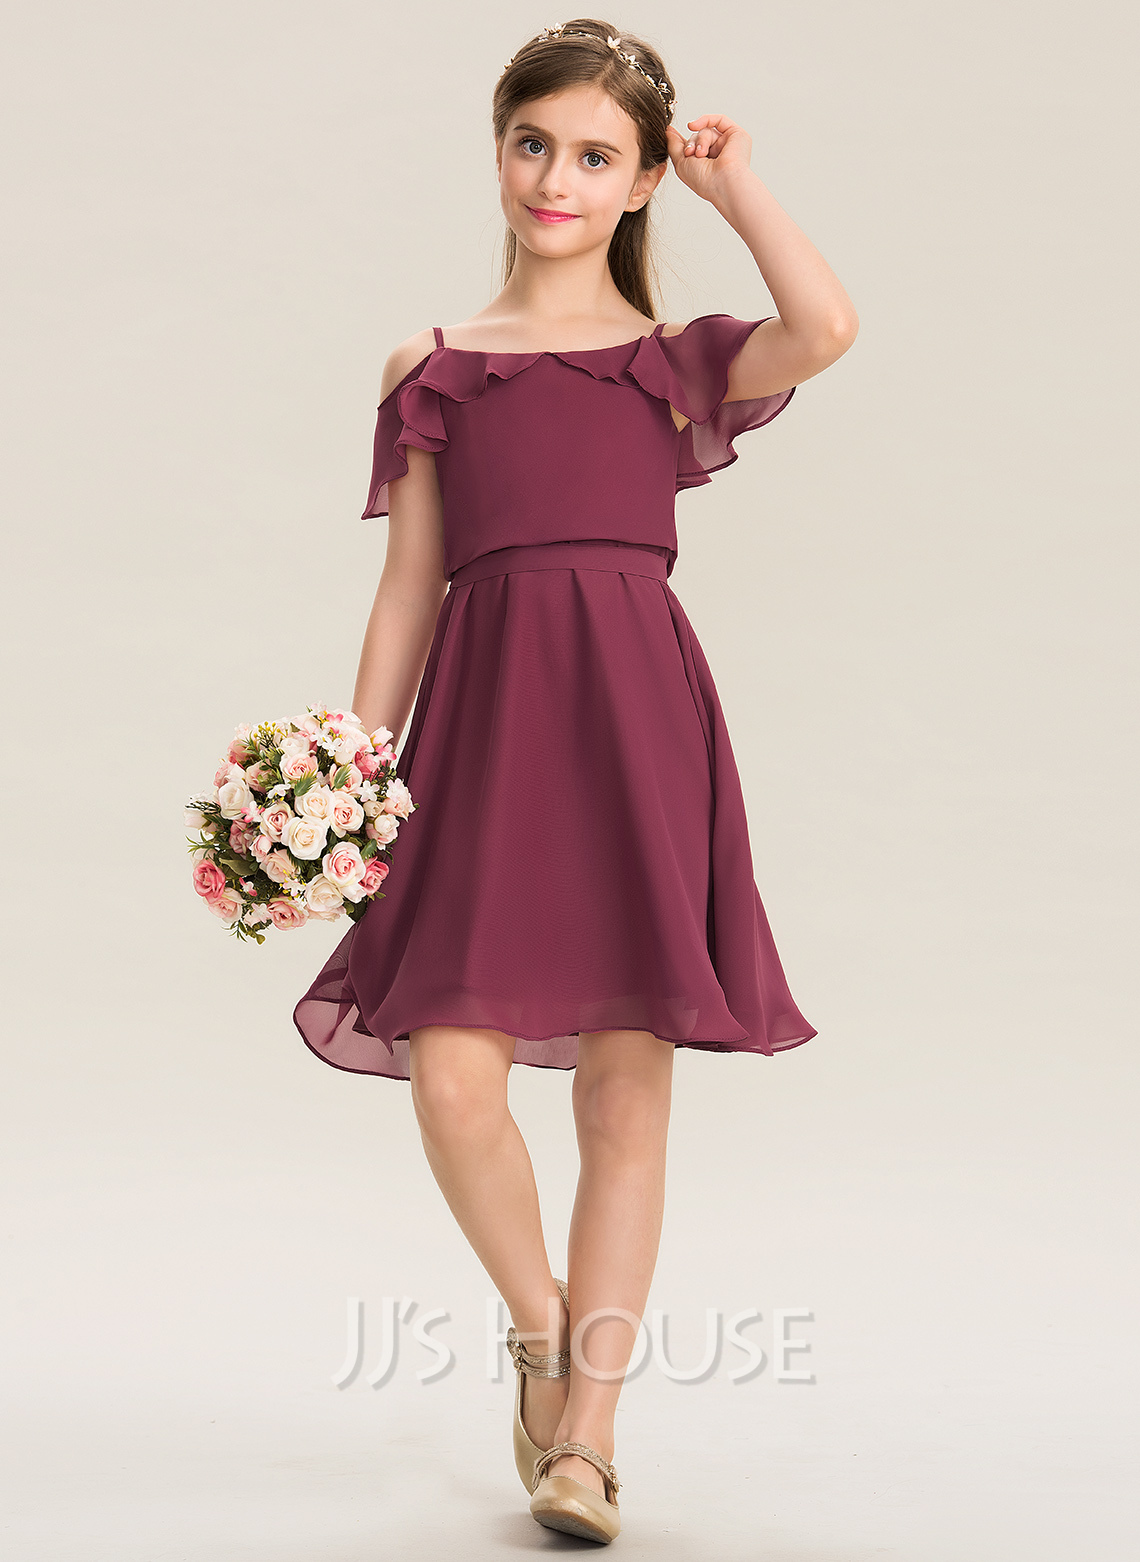 9519102cb4b A-Line Square Neckline Knee-Length Chiffon Junior Bridesmaid Dress With  Bow(s) Cascading Ruffles  173277